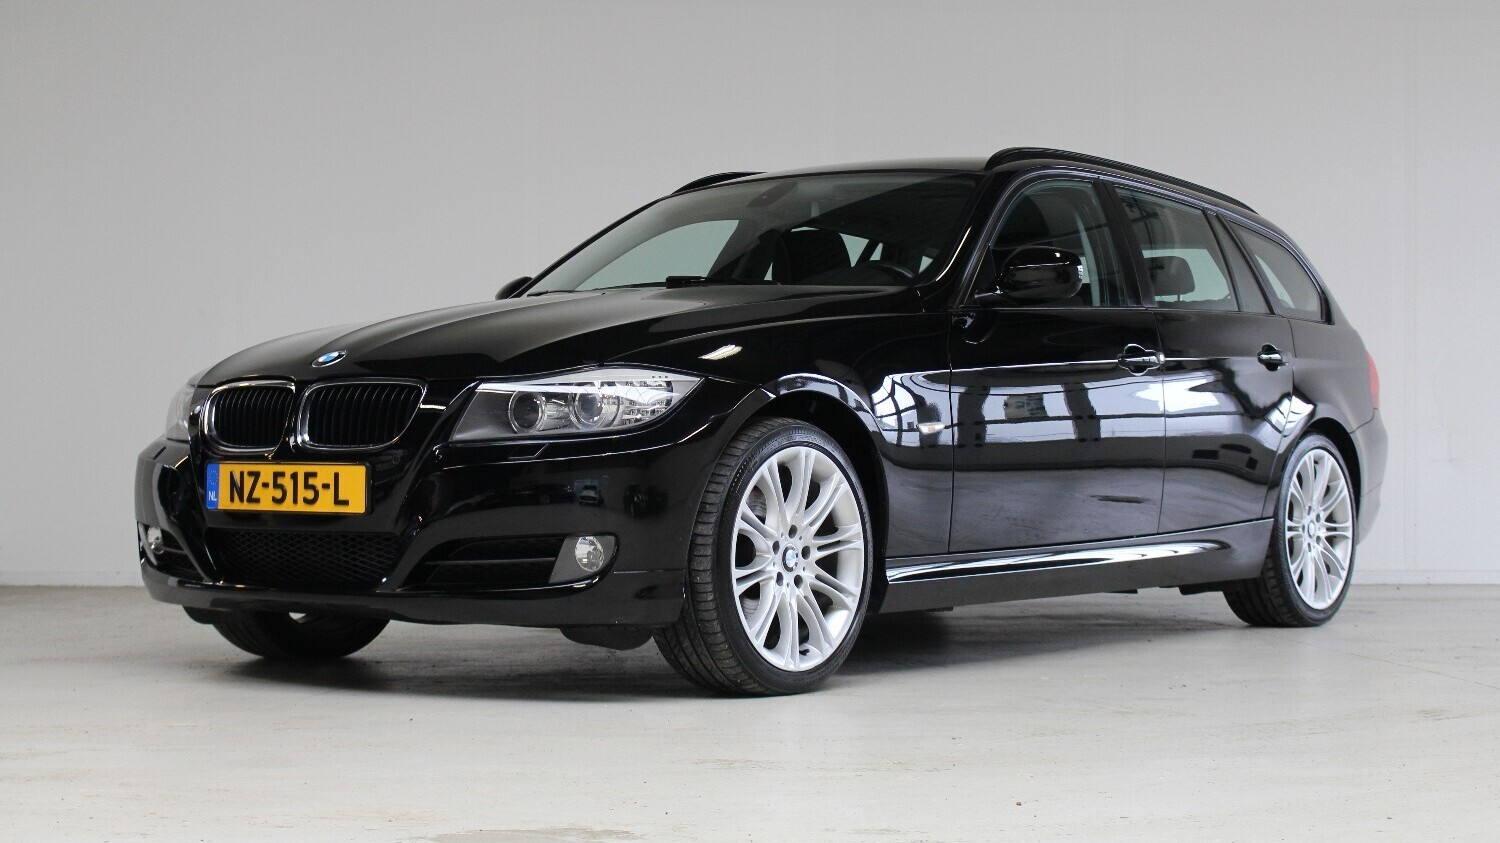 BMW 3-serie Station 2012 NZ-515-L 1